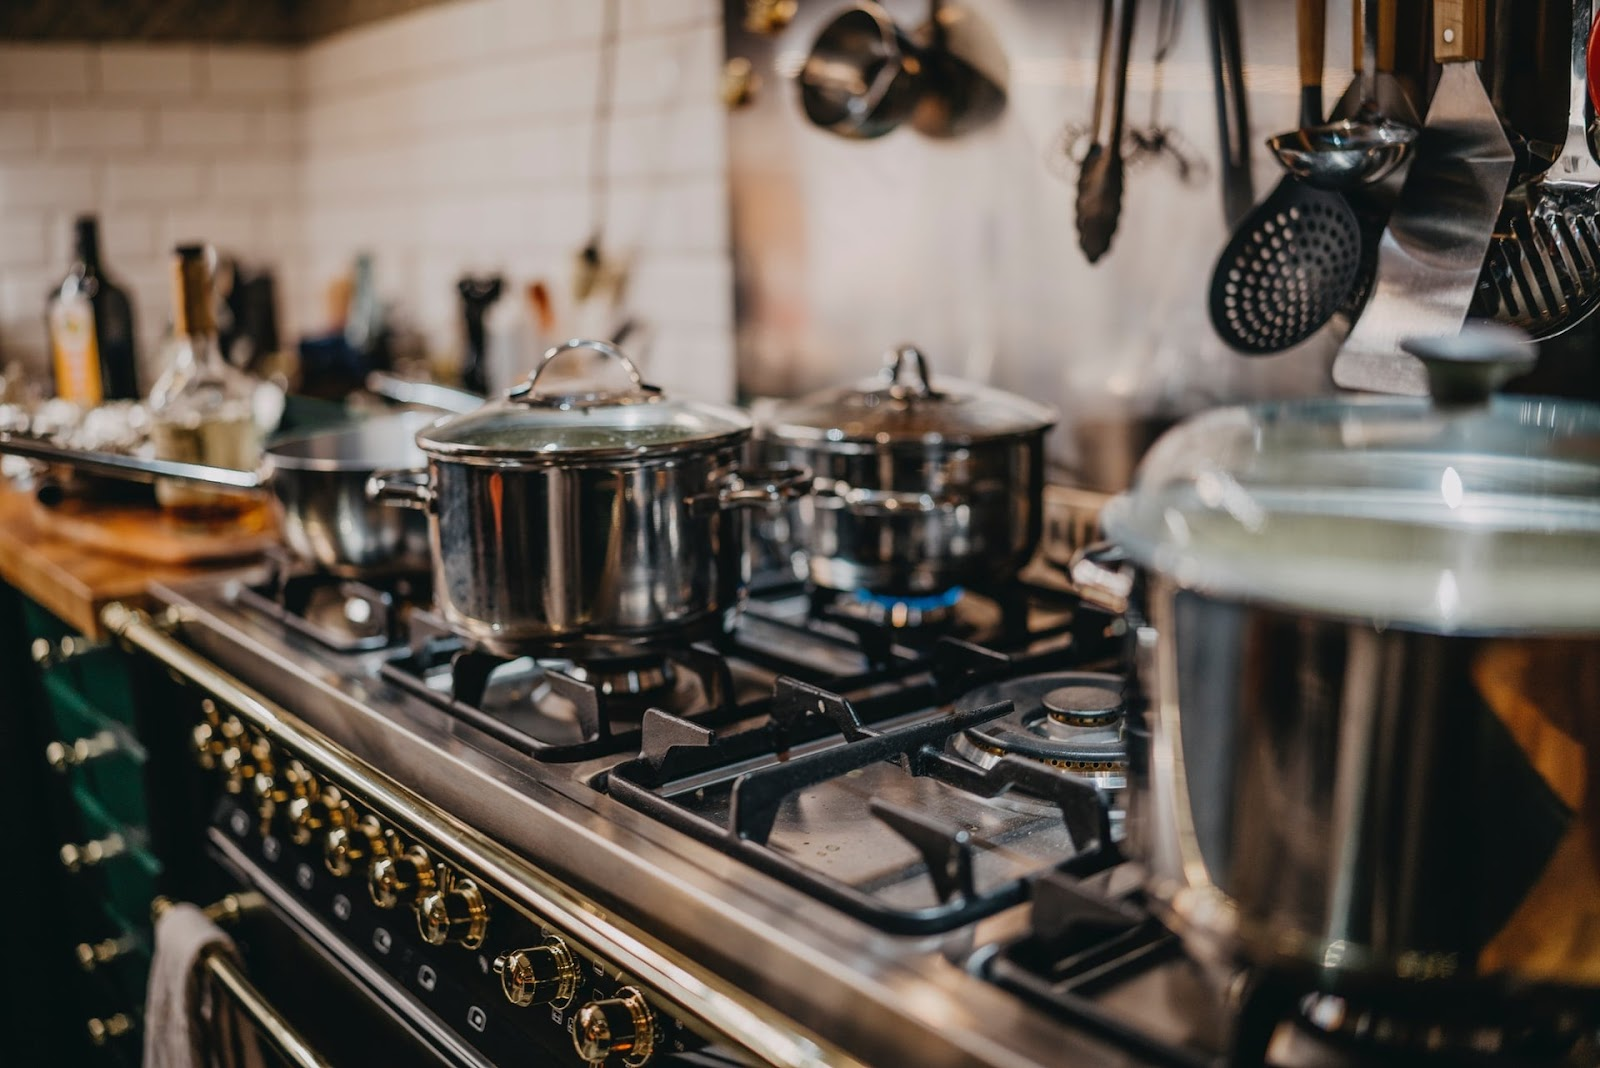 Use energy efficient appliances like pressure cookers to create a sustainable green kitchen.